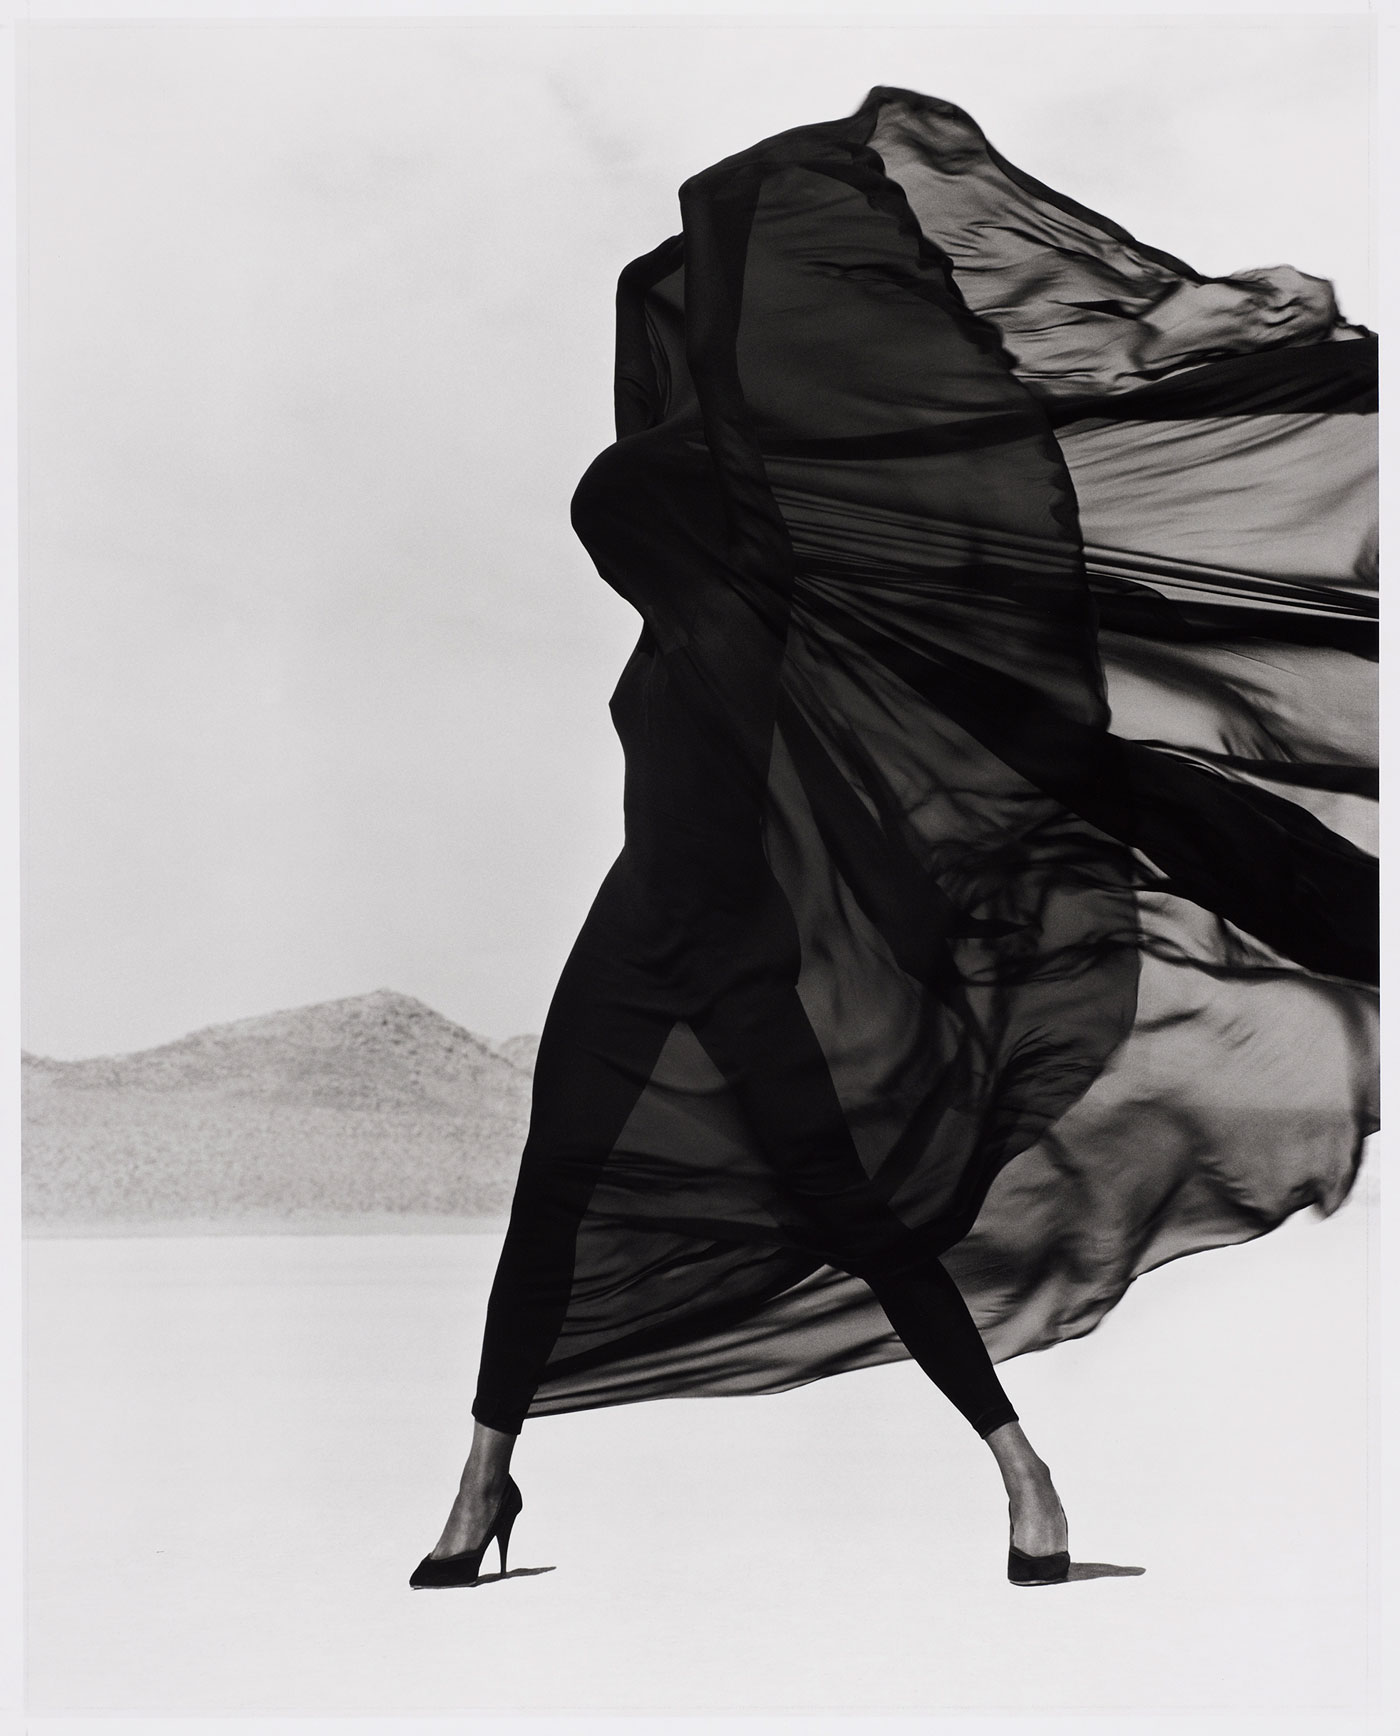 Herb Ritts  (American, 1952-2002)  Versace Veiled Dress, El Mirage  1990 Gelatin silver print Museum of Fine Arts, Boston Gift of Herb Ritts © Herb Ritts Foundation Photograph © Museum of Fine Arts, Boston